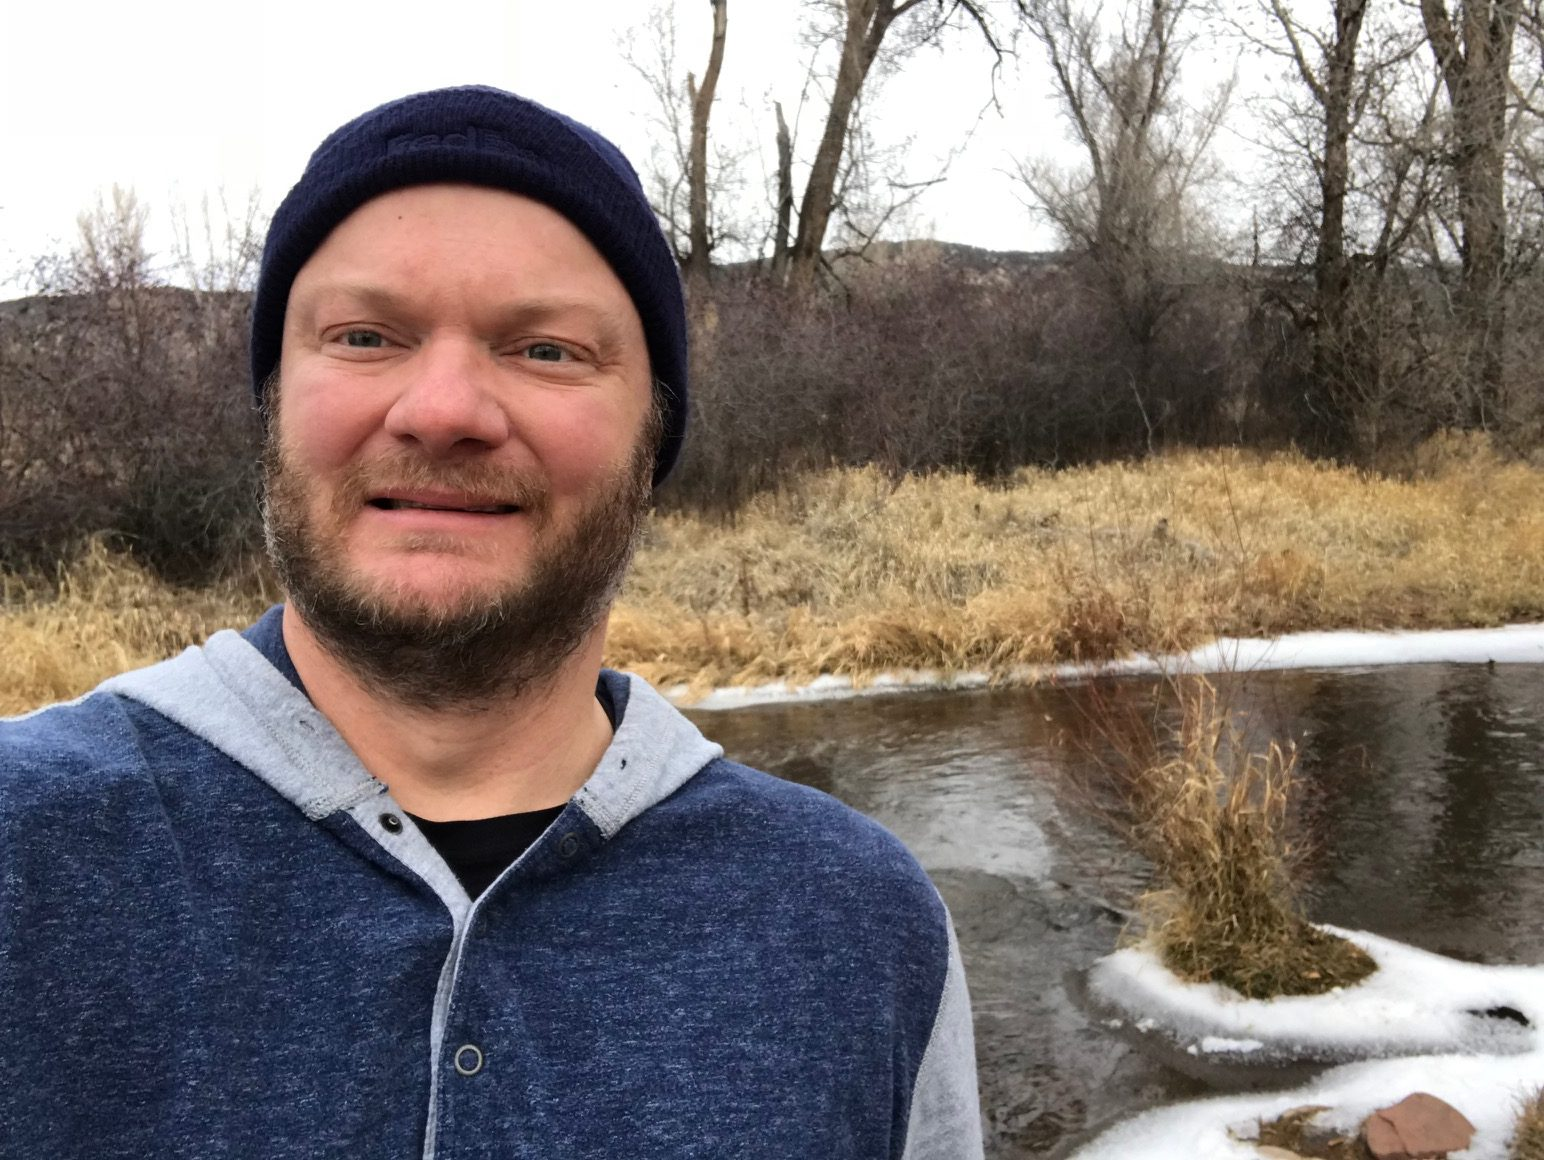 Obituary: Bryan Eugene Gile, Aug. 10, 1974 – Feb. 17, 2019